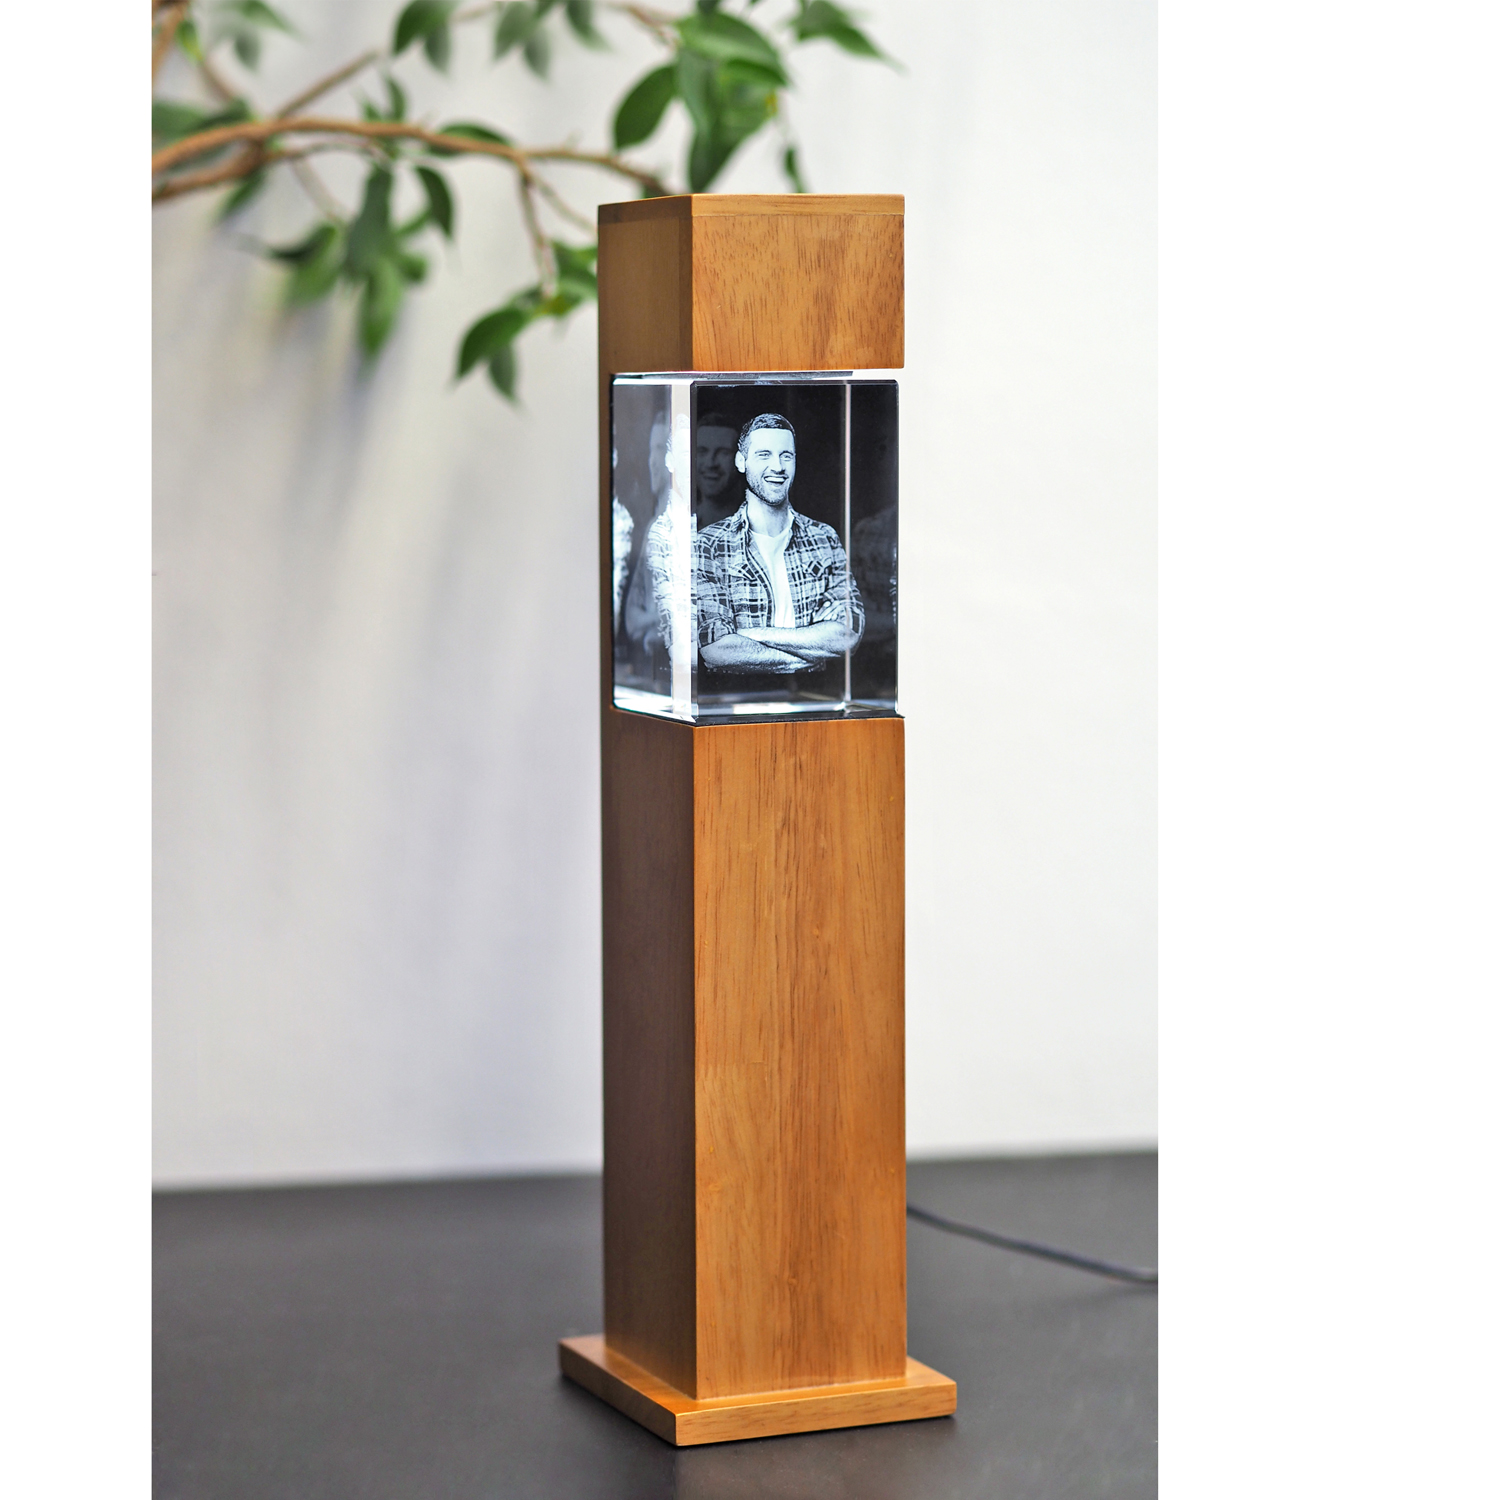 690201_stele_Rubberwood_S_90x60x60_hoch_mood